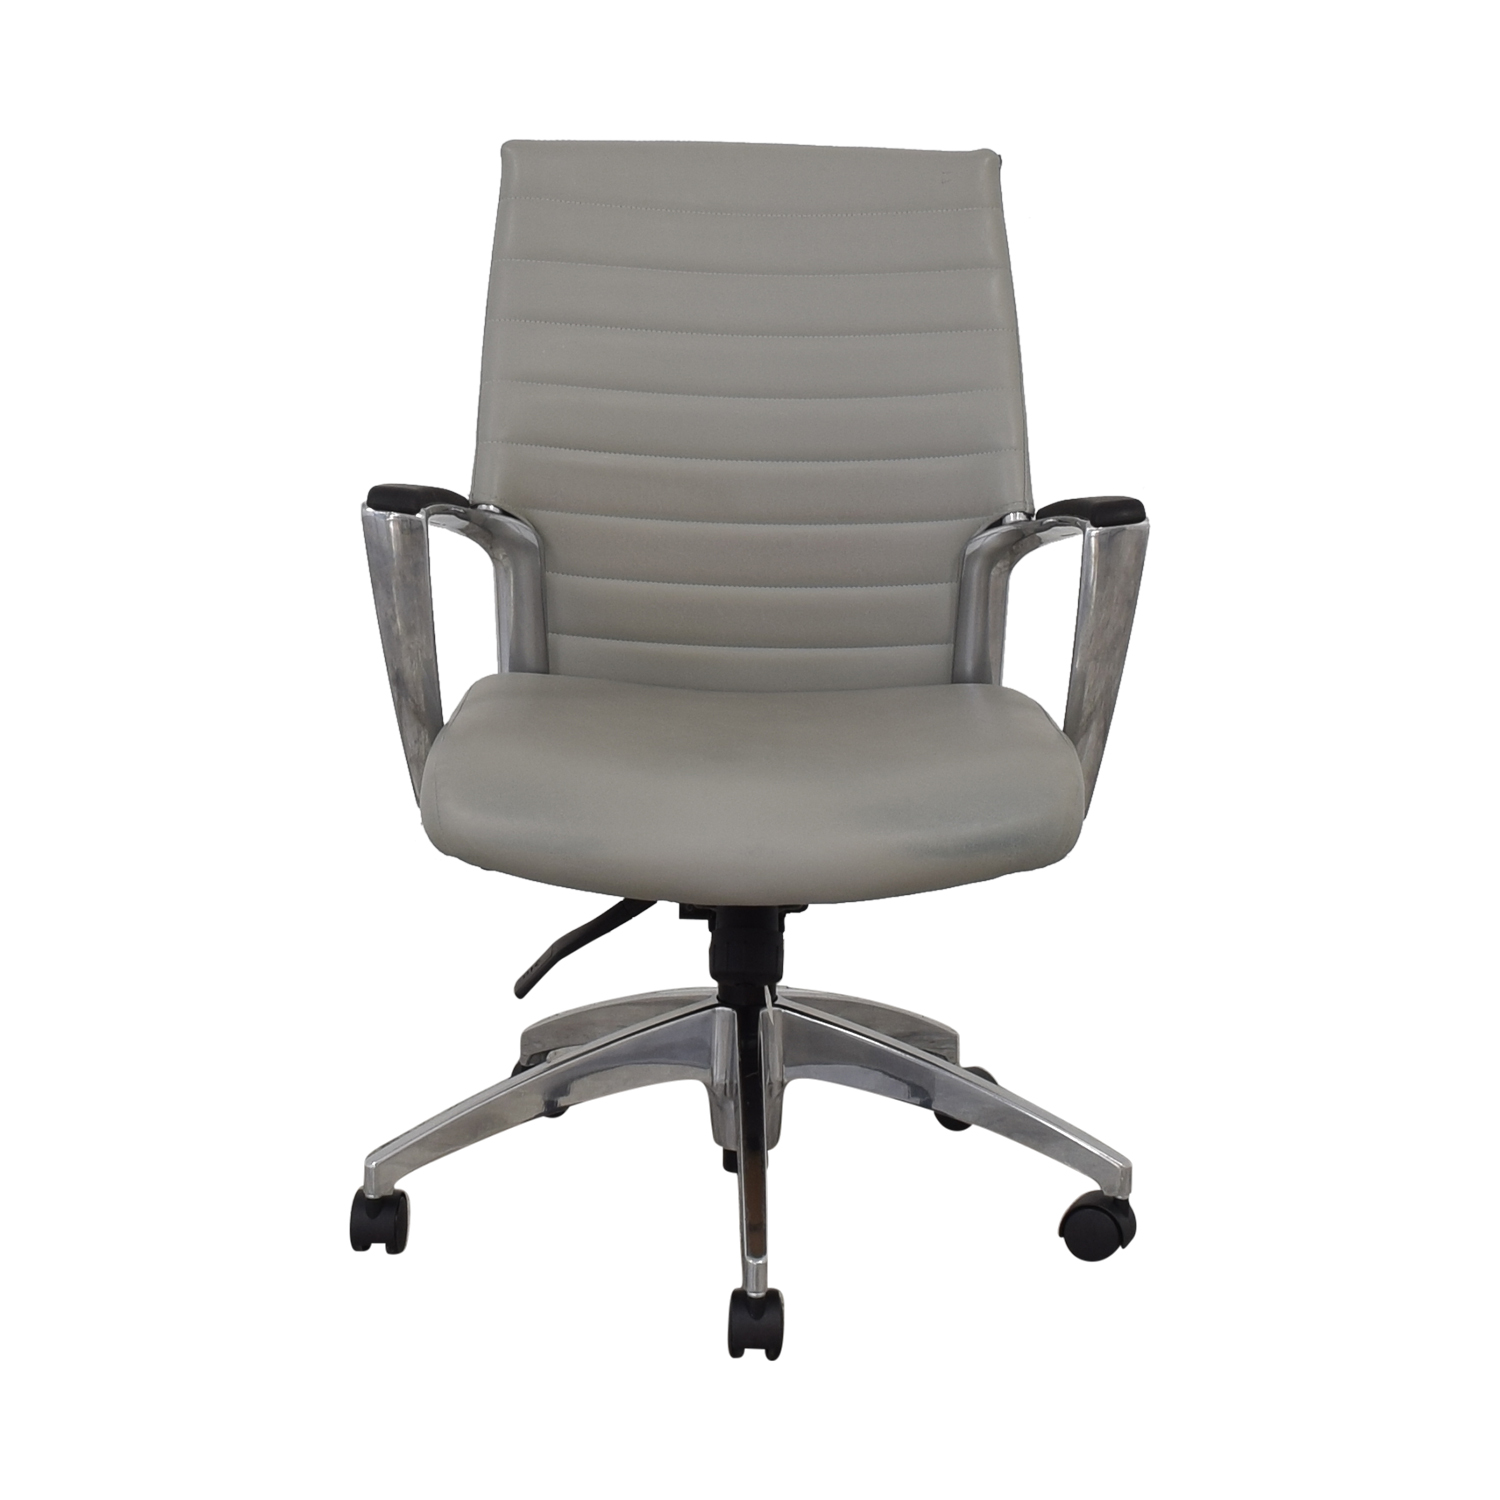 Global Global Accord Upholstered Medium Back Tilter Chair discount